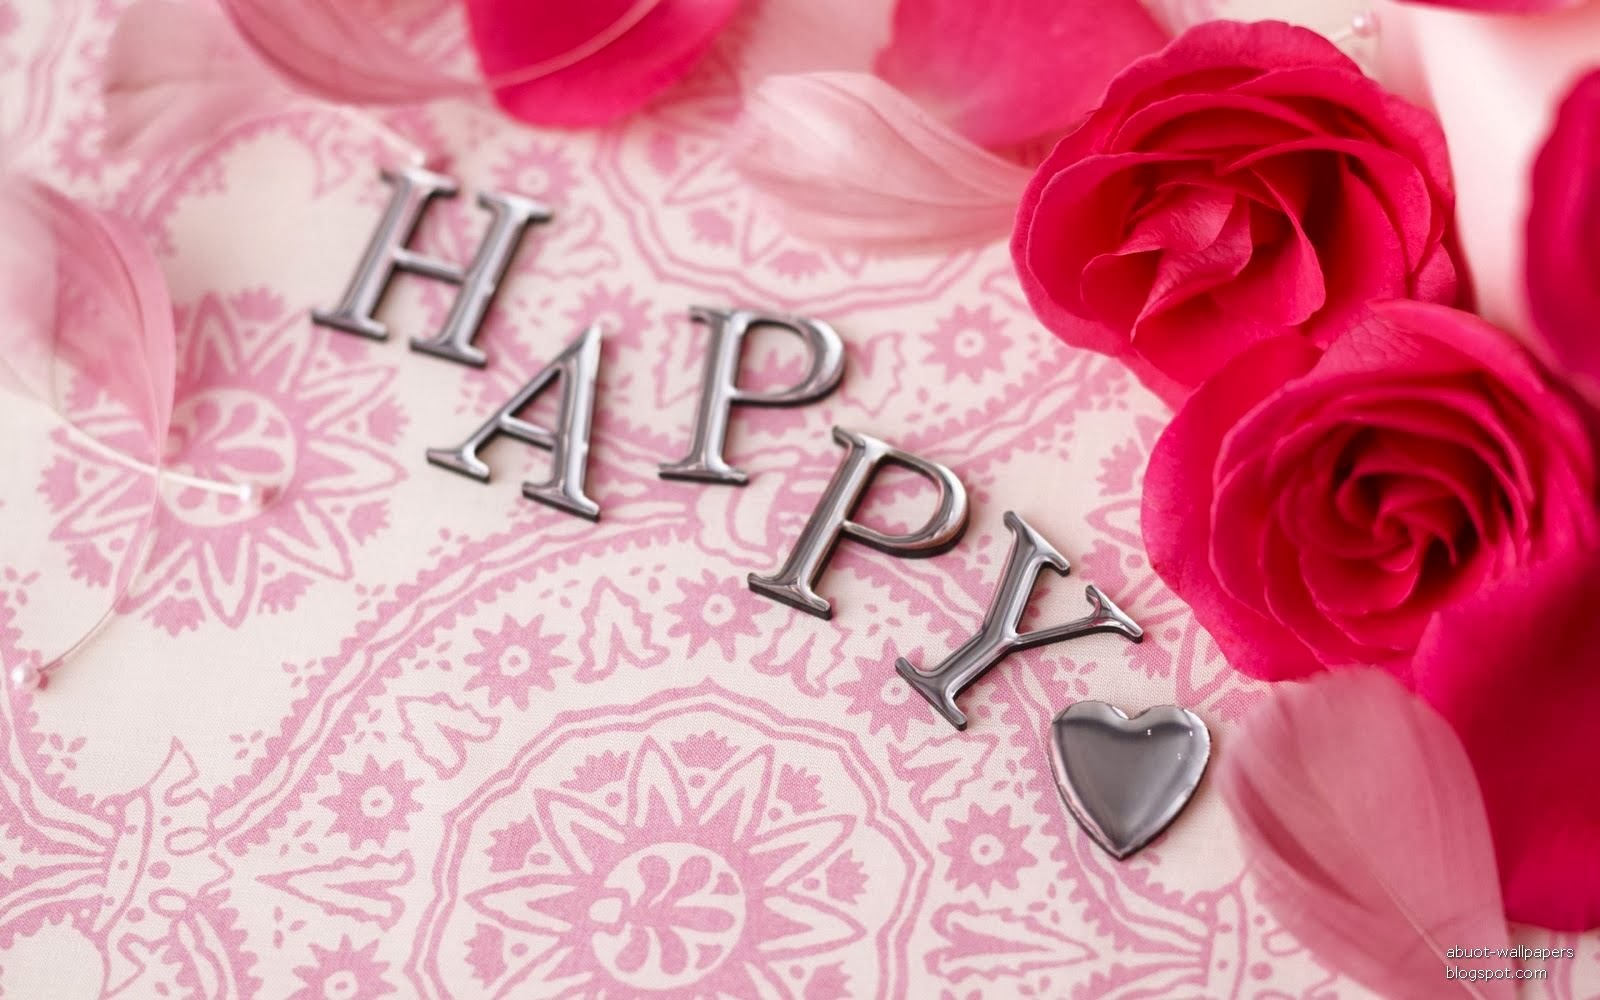 Most Inspiring Wallpaper Birthday Father - happy_birthday_wallpaper_with_rose  Trends_462467.jpg